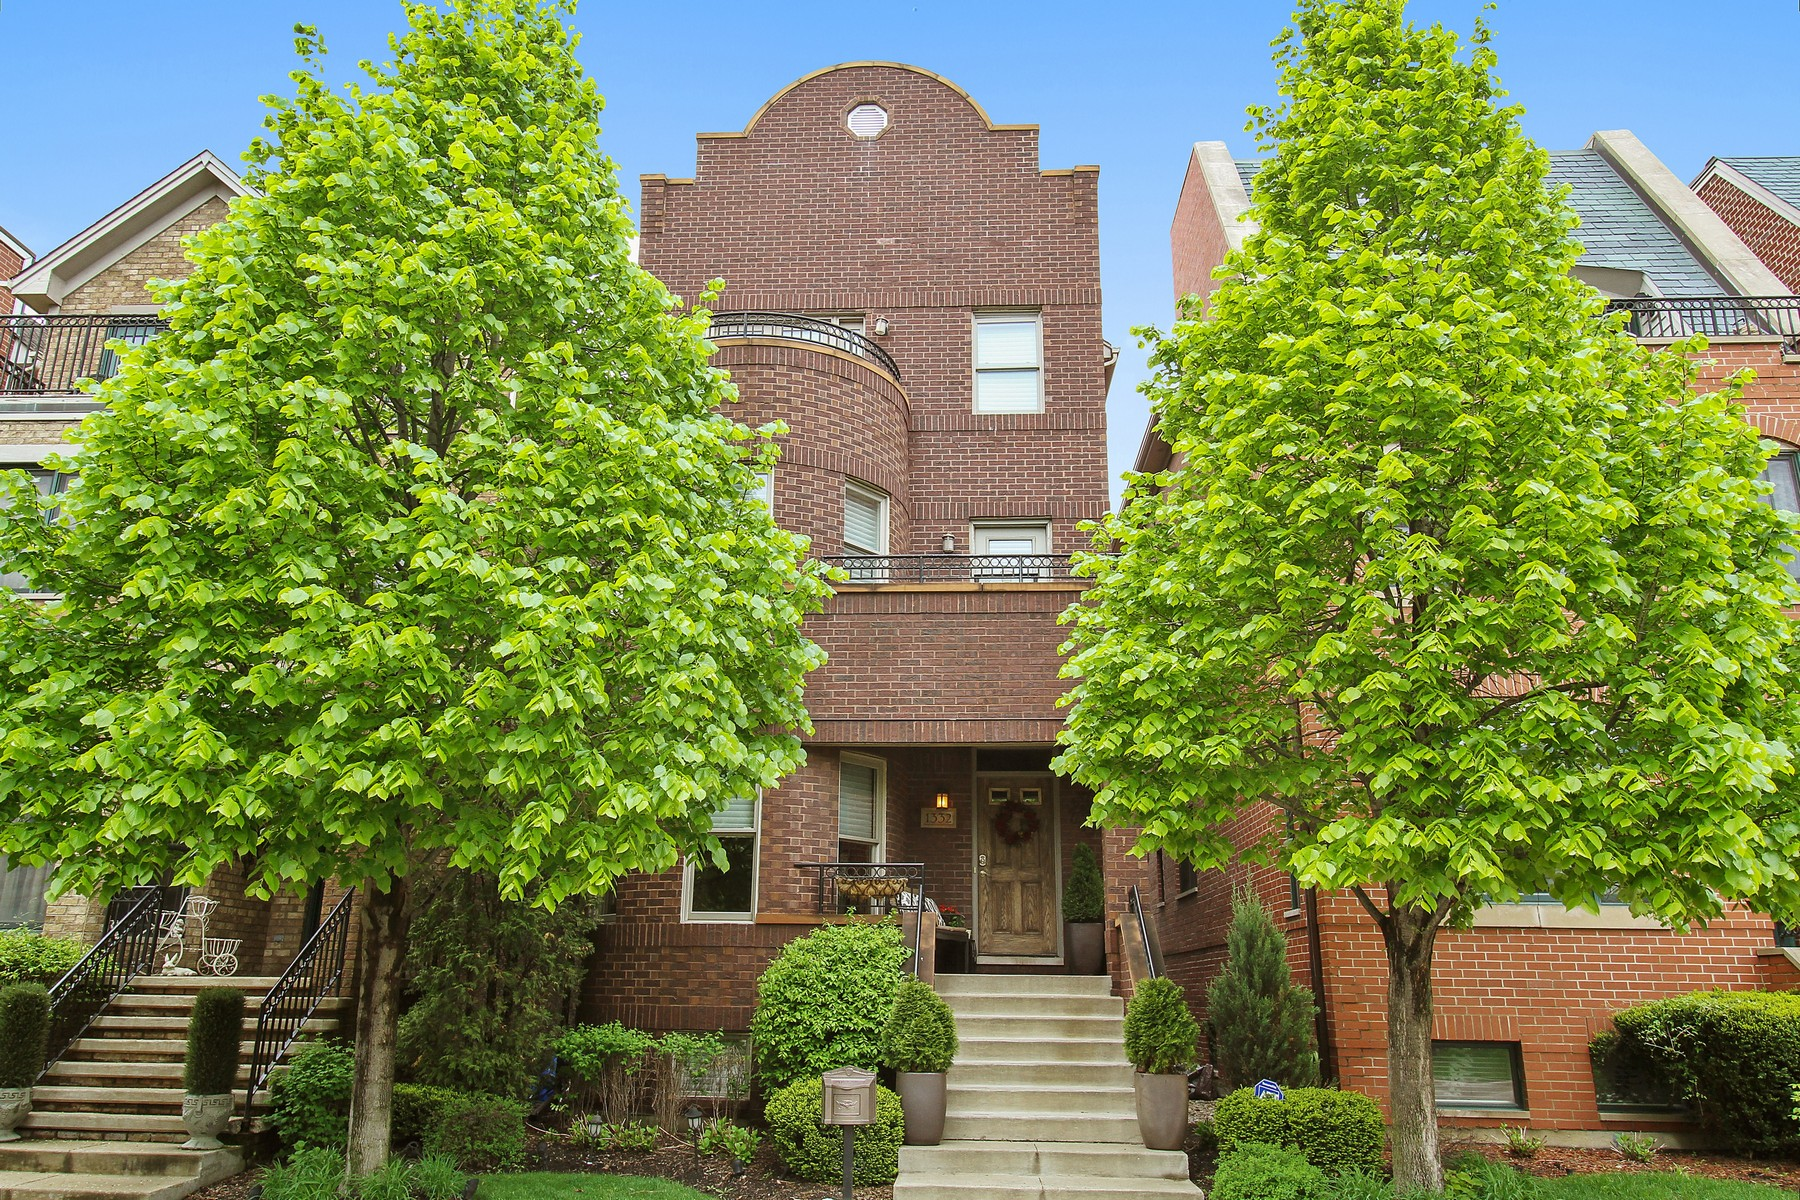 Single Family Home for Sale at Bridgeport Village Three Story Home 1332 W 32nd Place Bridgeport, Chicago, Illinois, 60608 United States